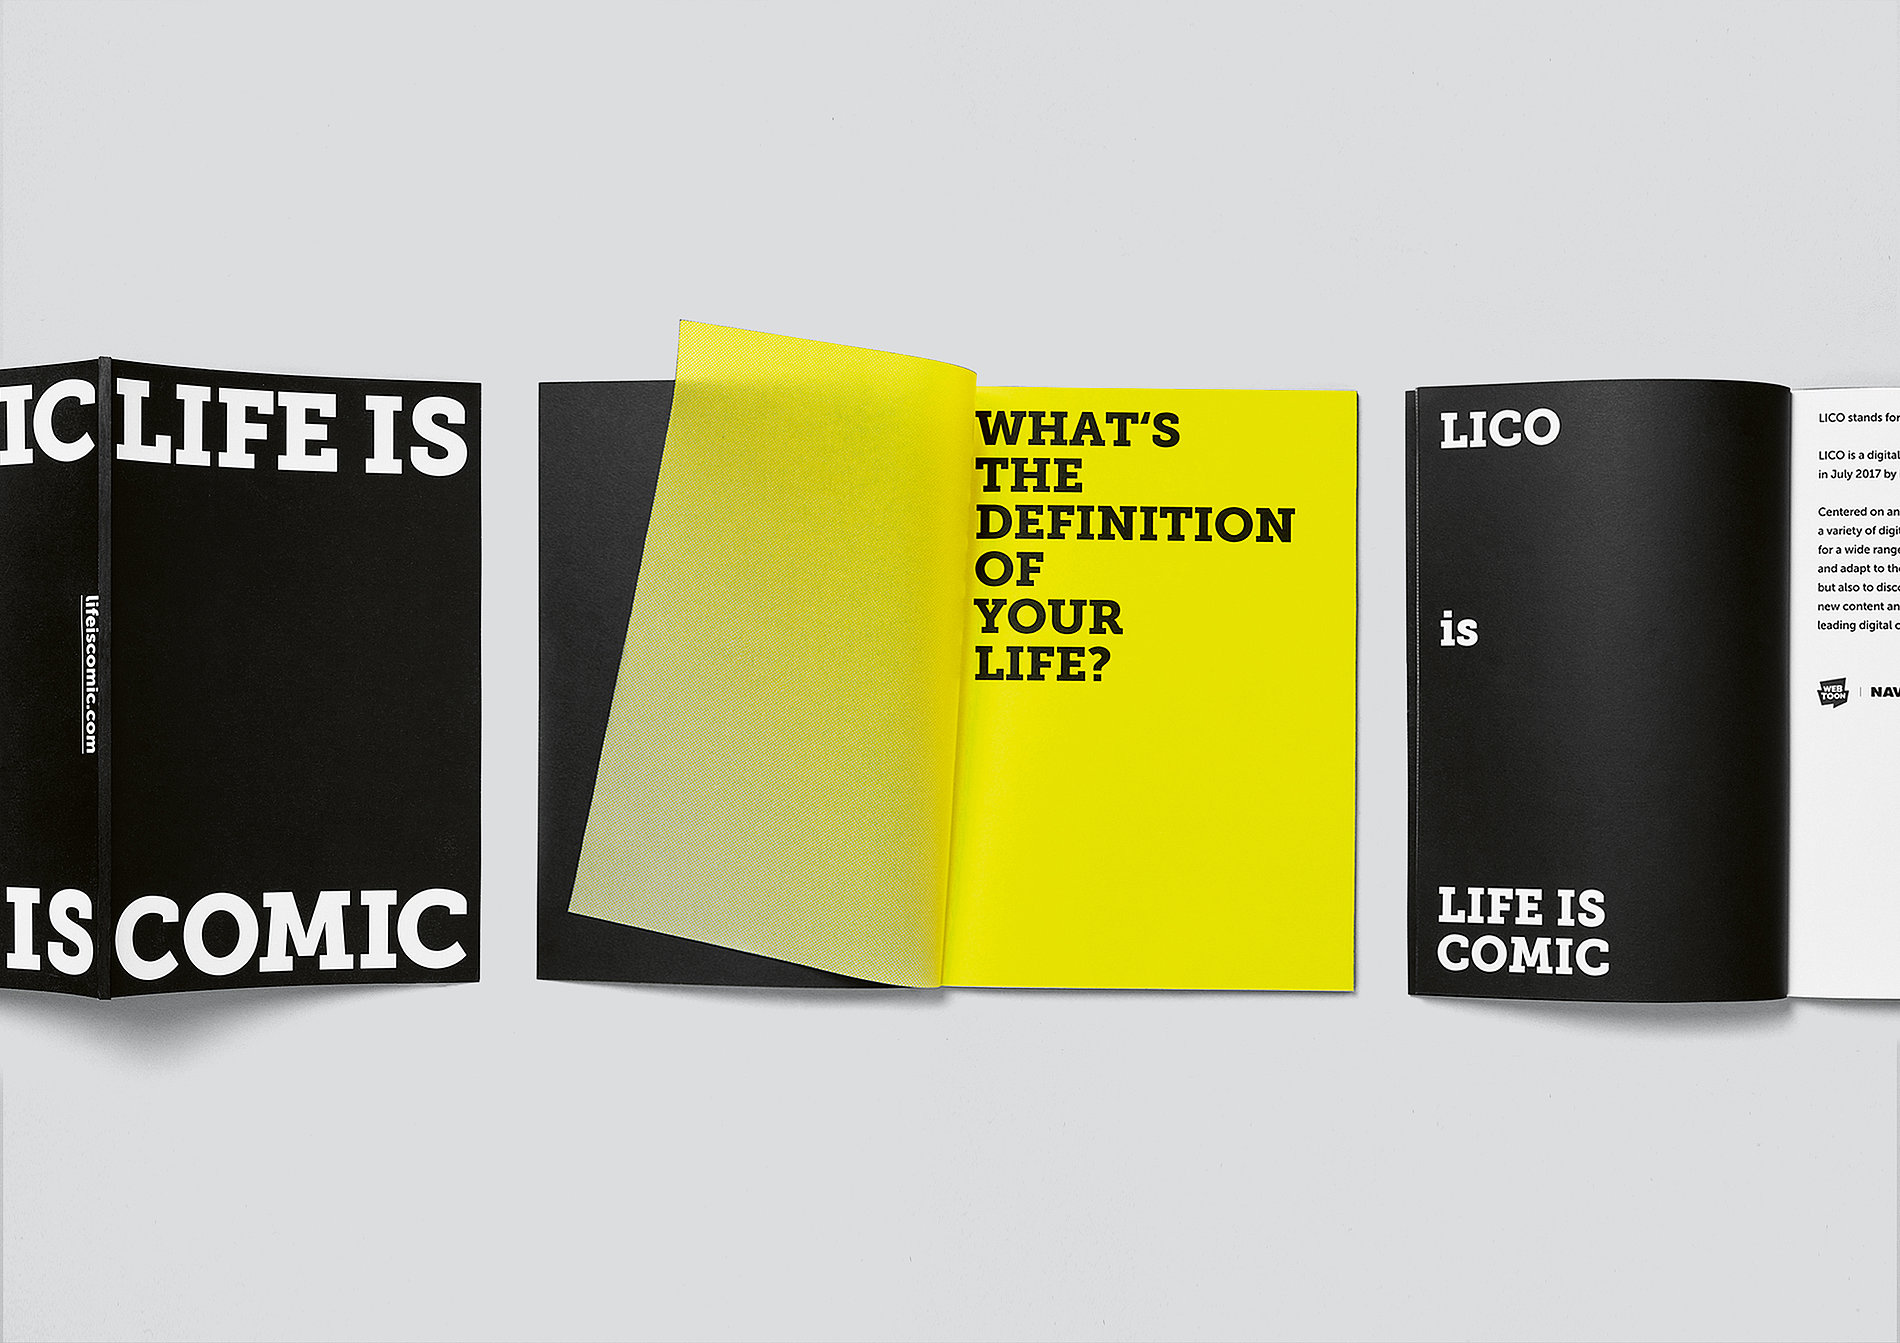 LIFE IS COMIC | Red Dot Design Award